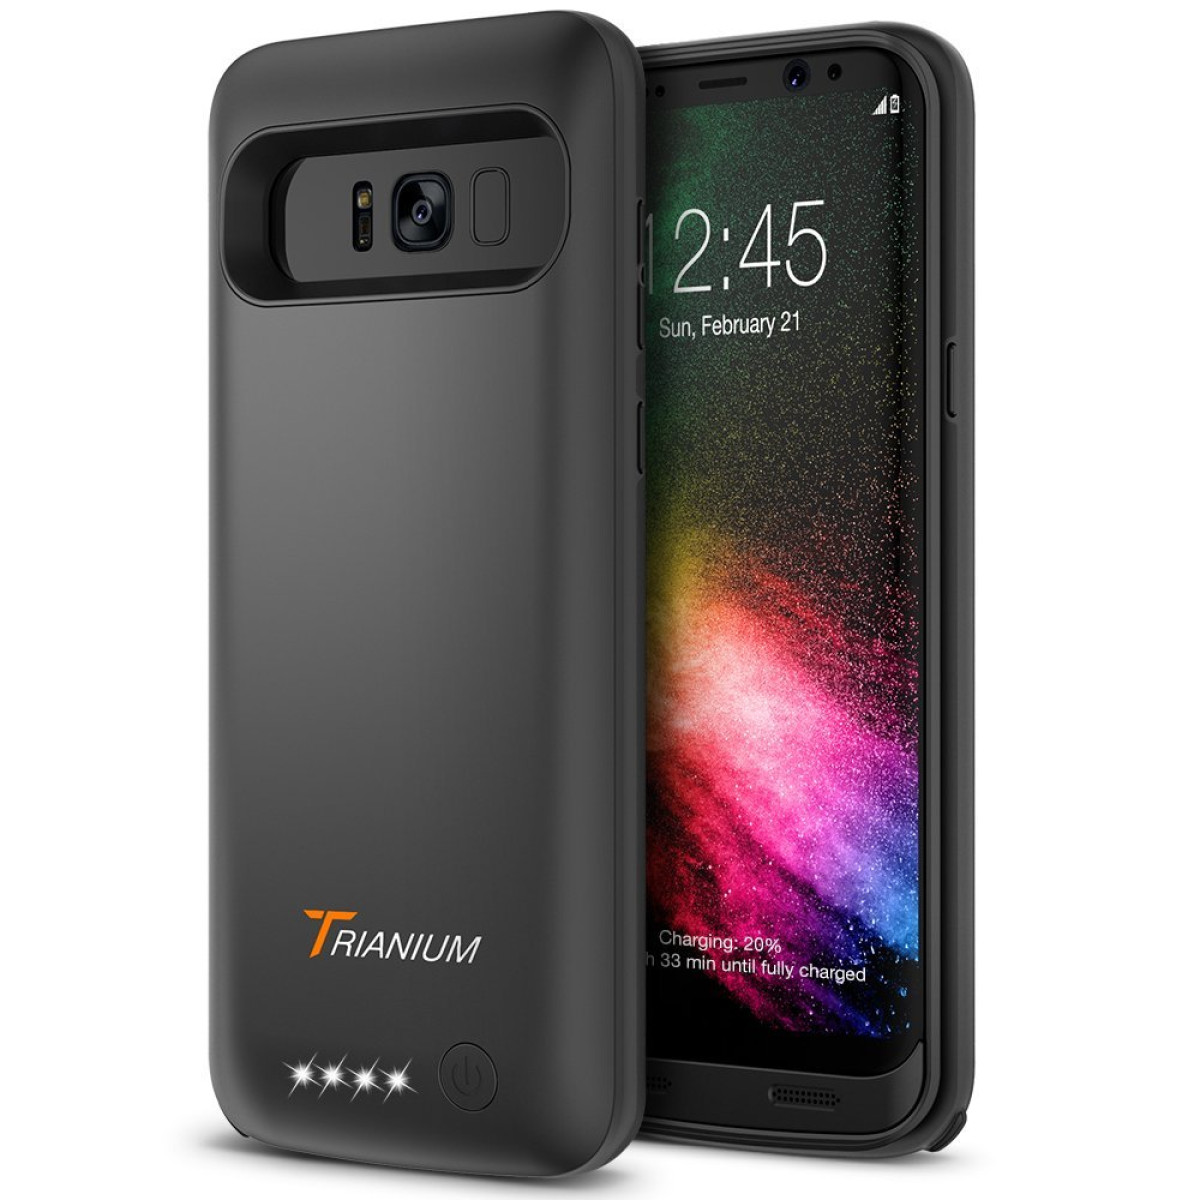 best sneakers 8994f 80593 Galaxy S8 Plus Battery Case, Trianium Atomic Pro Battery Charger for  Samsung Galaxy s8 Plus / s8+ 6.2-inch Phone ONLY- 5000mAh Extended Battery  Juice ...